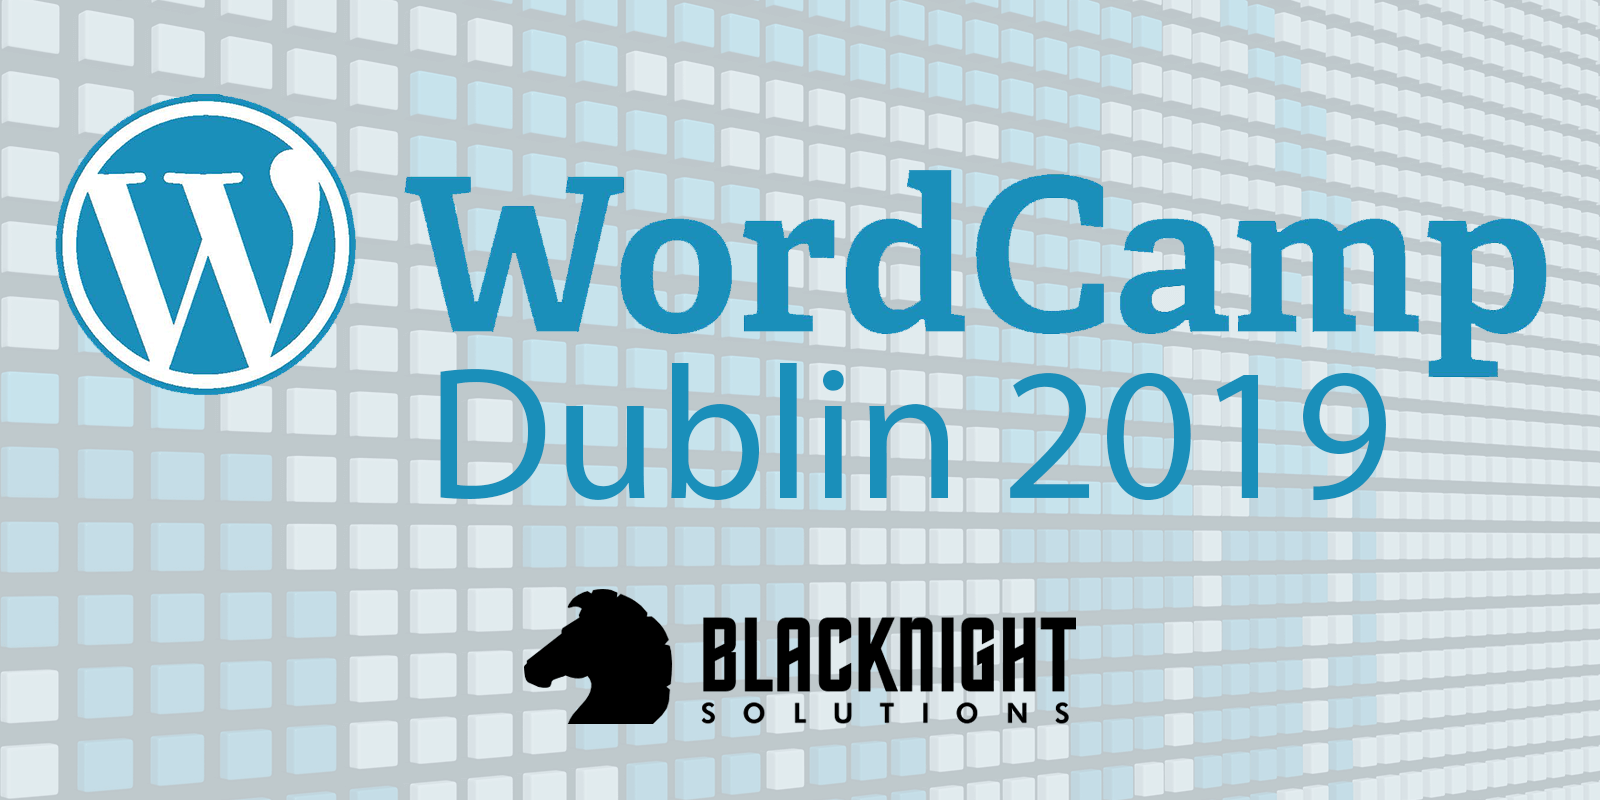 Blacknight is a platinum sponsor for WordCamp 2019.